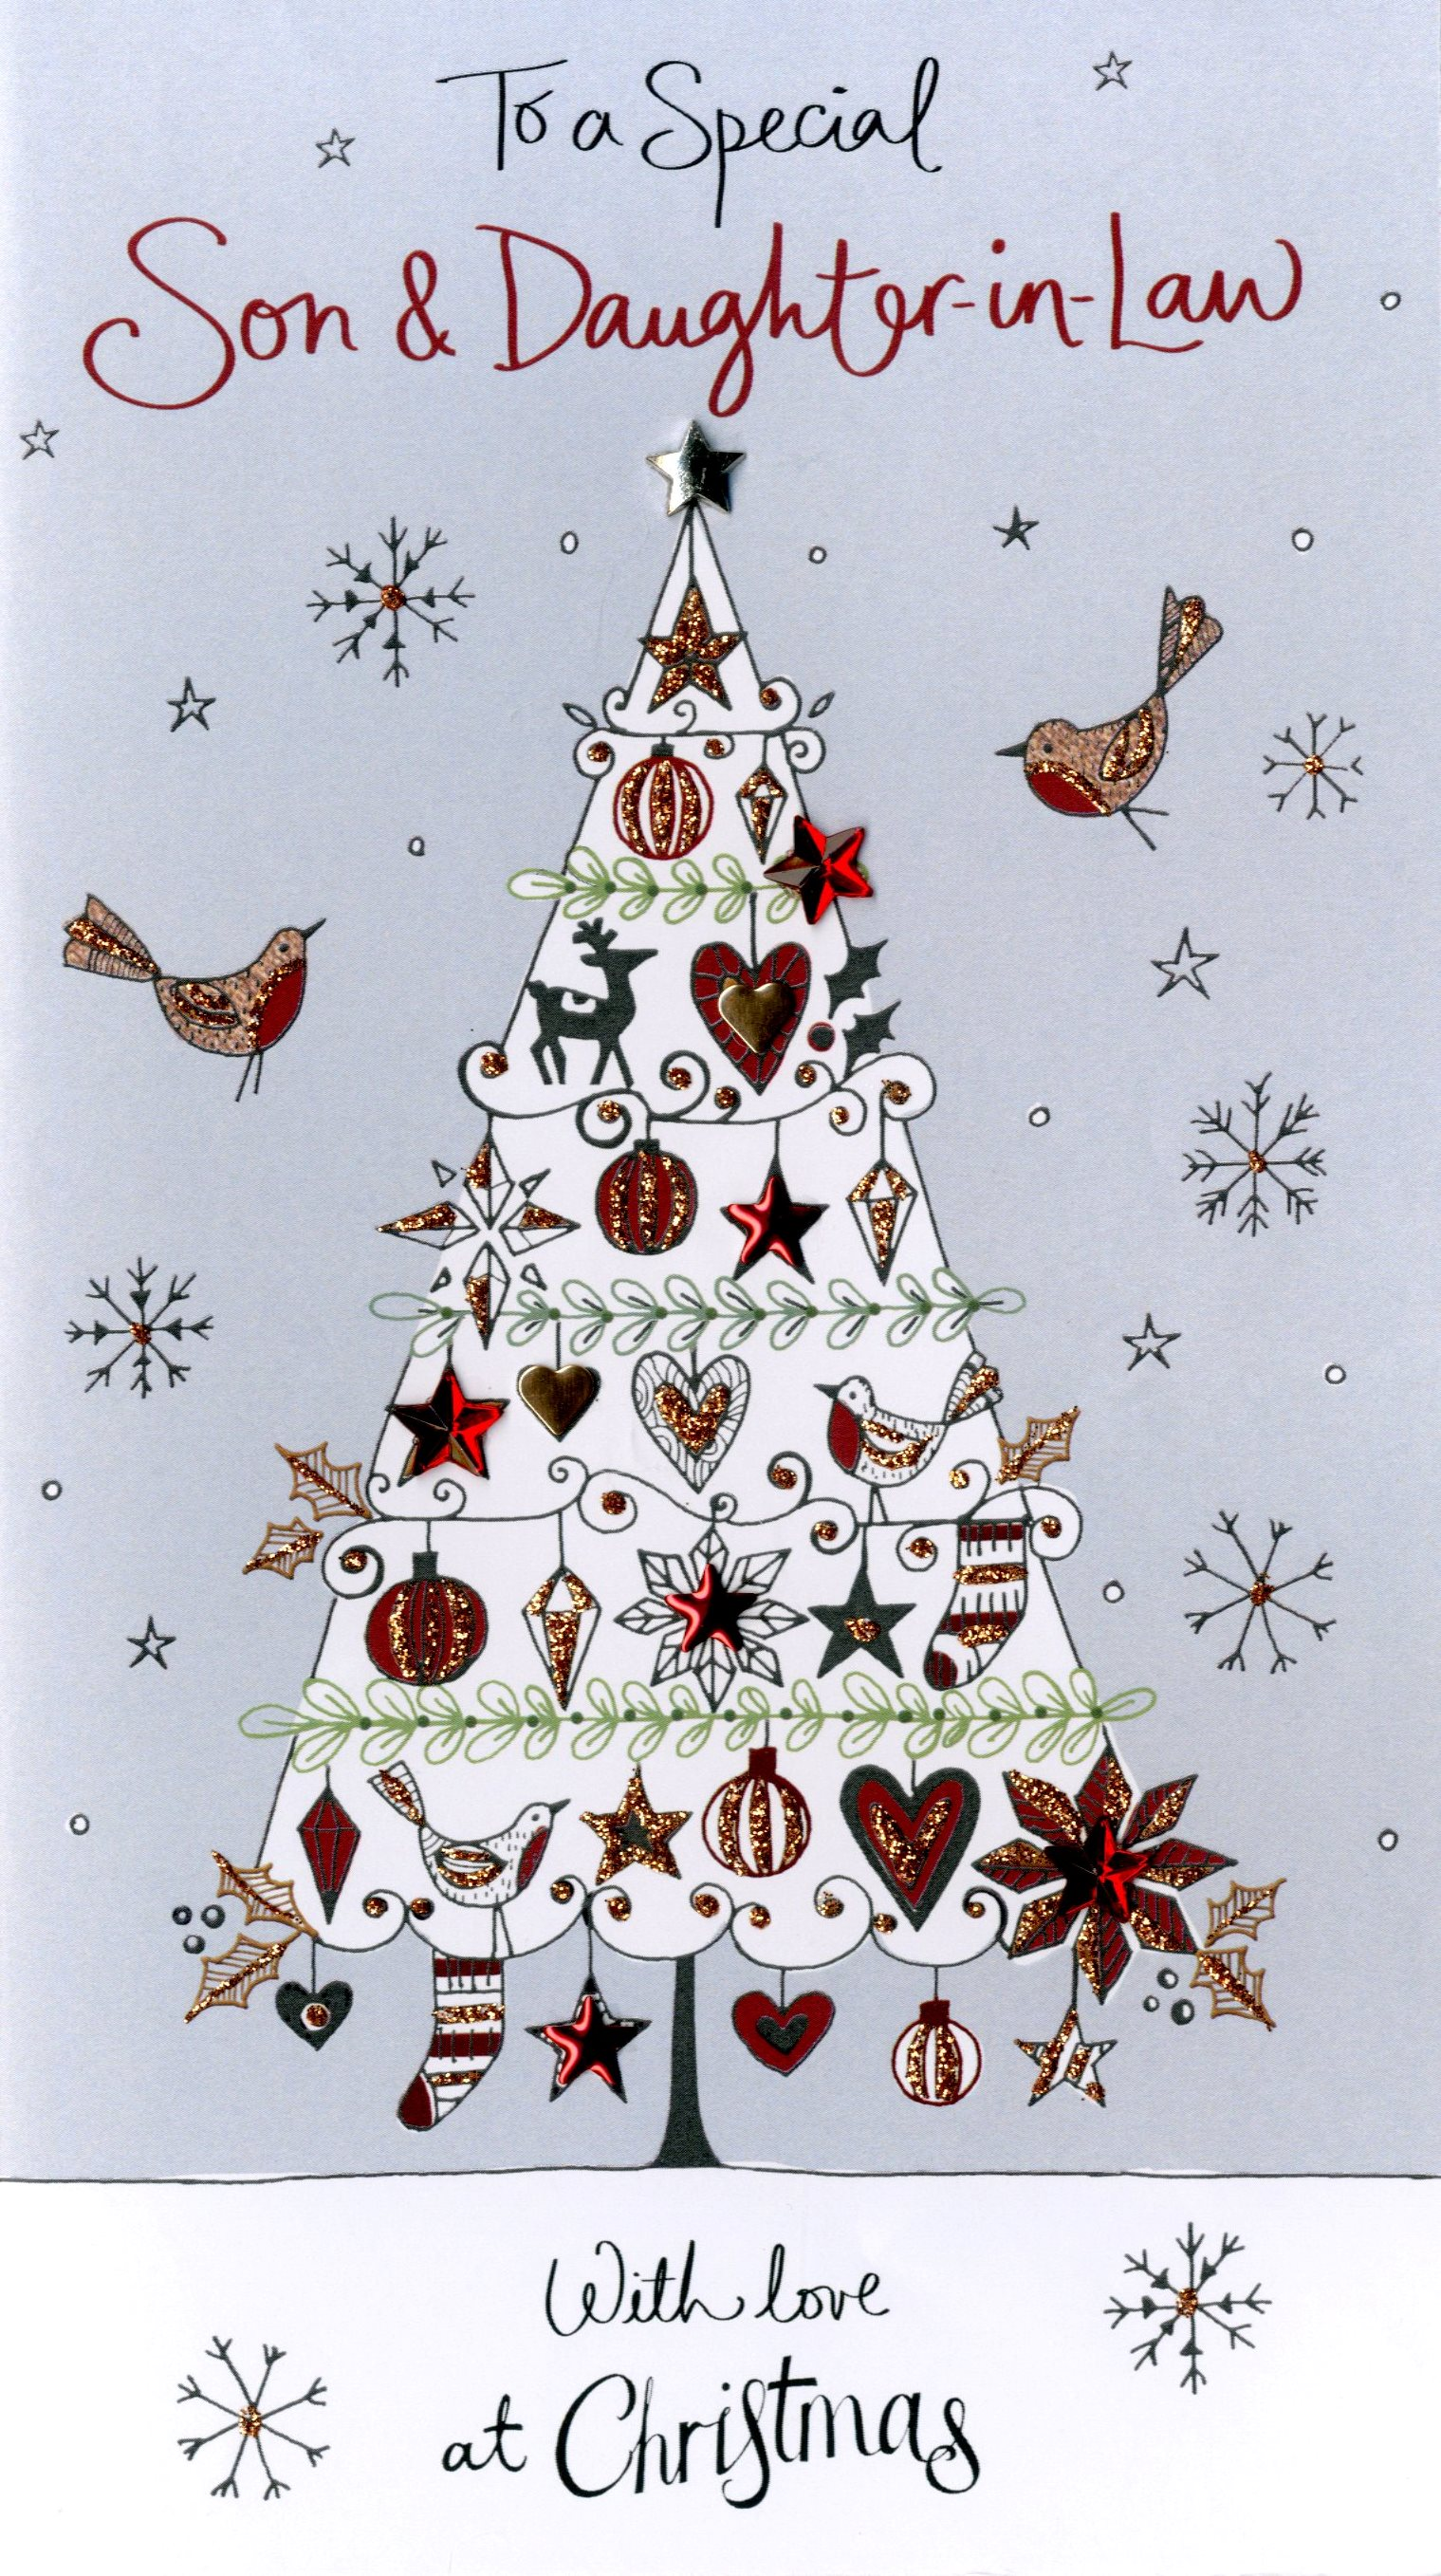 Son & Daughter-In-Law Embellished Christmas Card | Cards | Love Kates